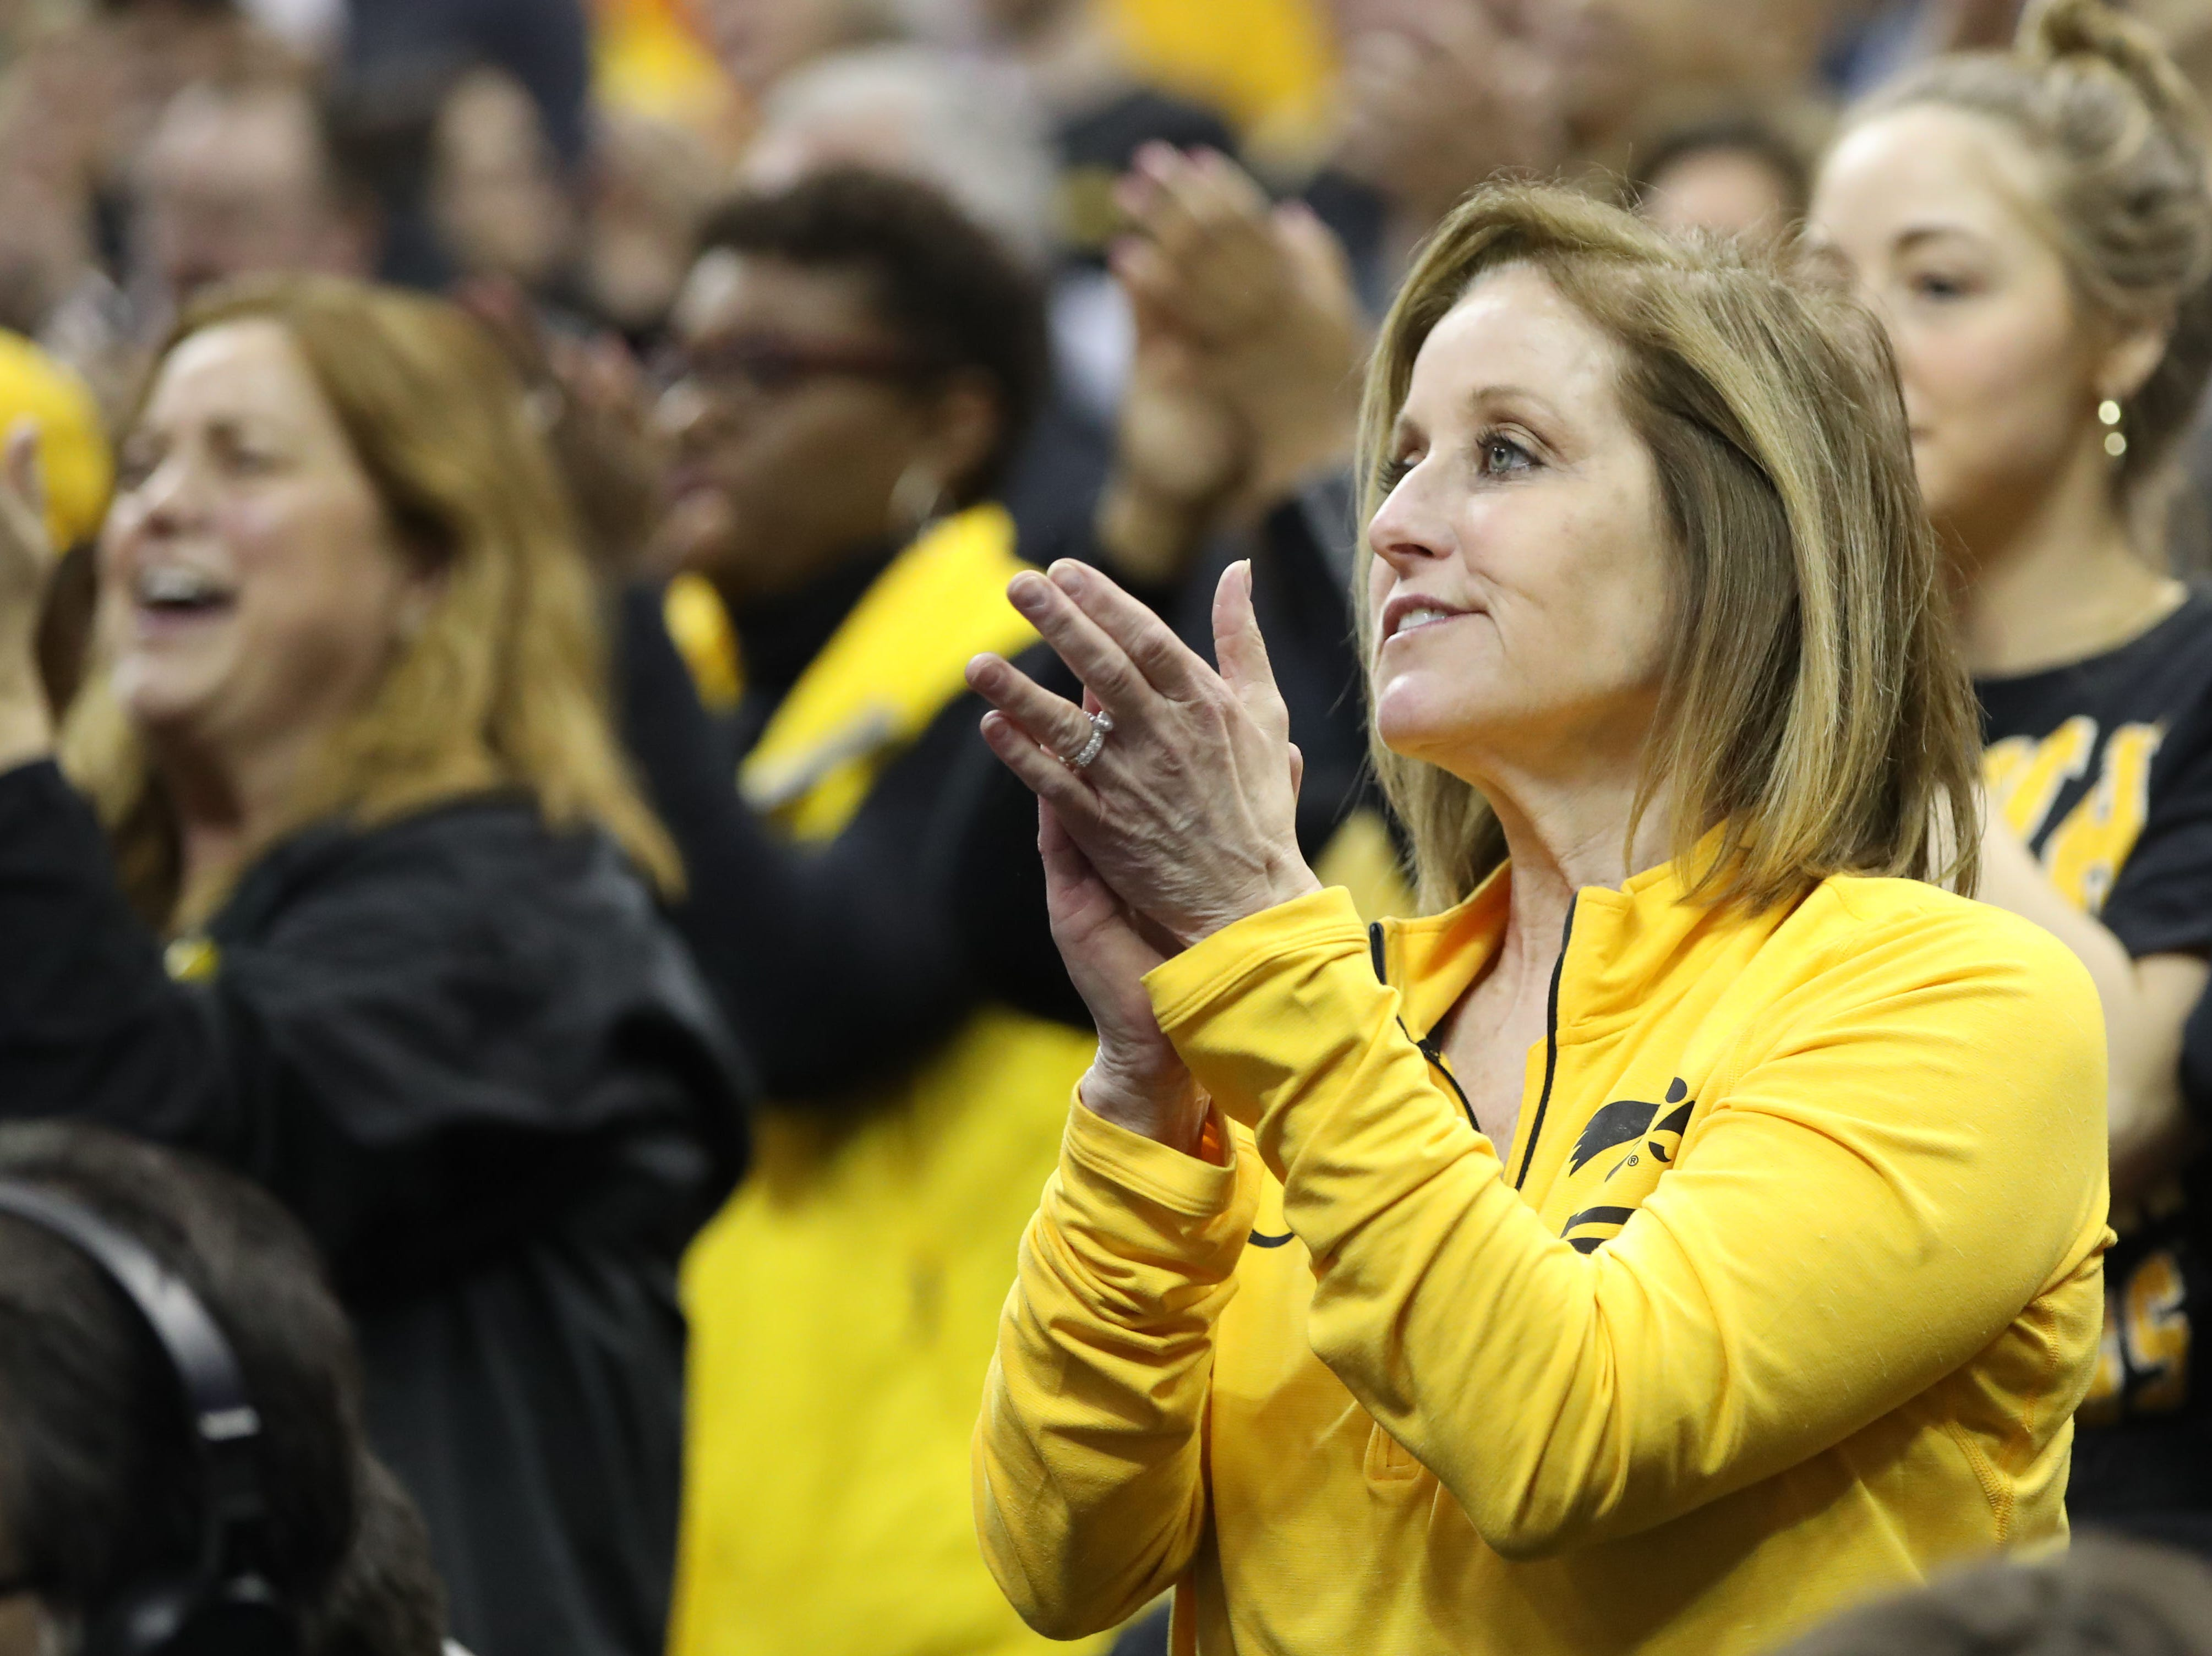 Iowa Hawkeyes fan watch the game against the Tennessee Volunteers in the second round of the 2019 NCAA Tournament at Nationwide Arena.